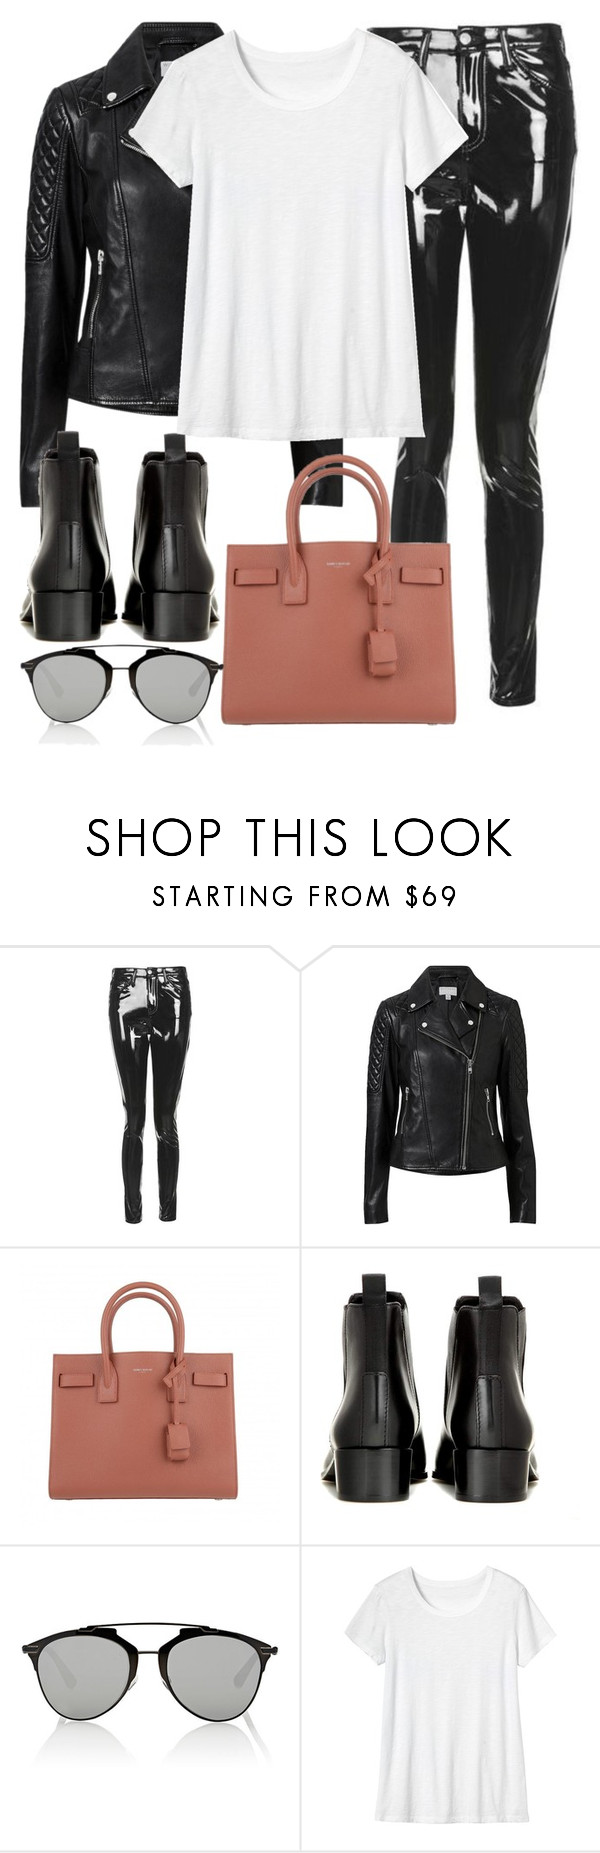 """""""Untitled #3027"""" by elenaday ❤ liked on Polyvore featuring Topshop, Witchery, Yves Saint Laurent, Acne Studios, Christian Dior and Toast"""